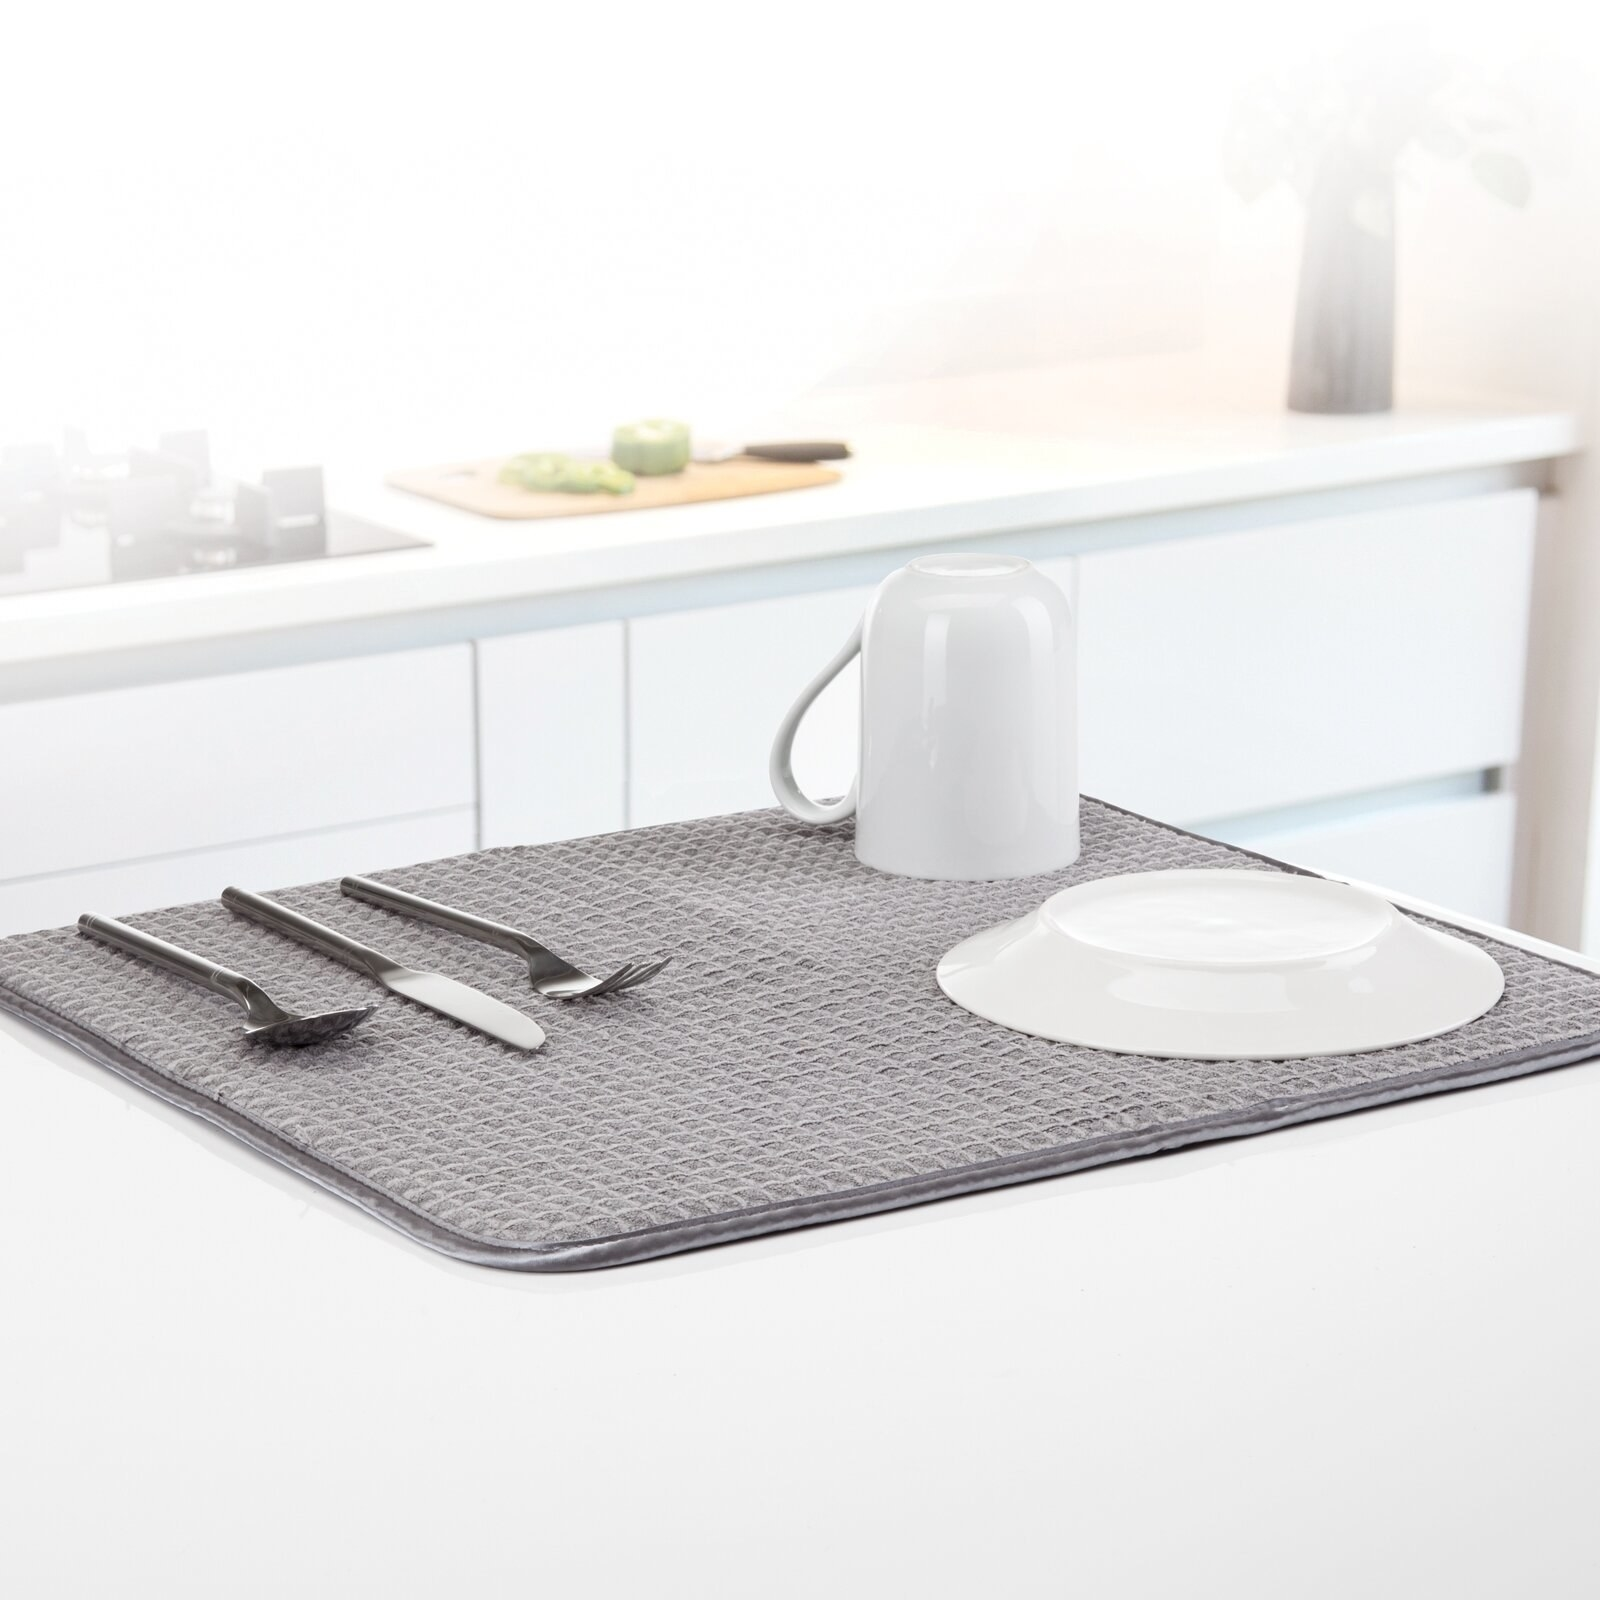 A gray drying mat with dishes laid on it